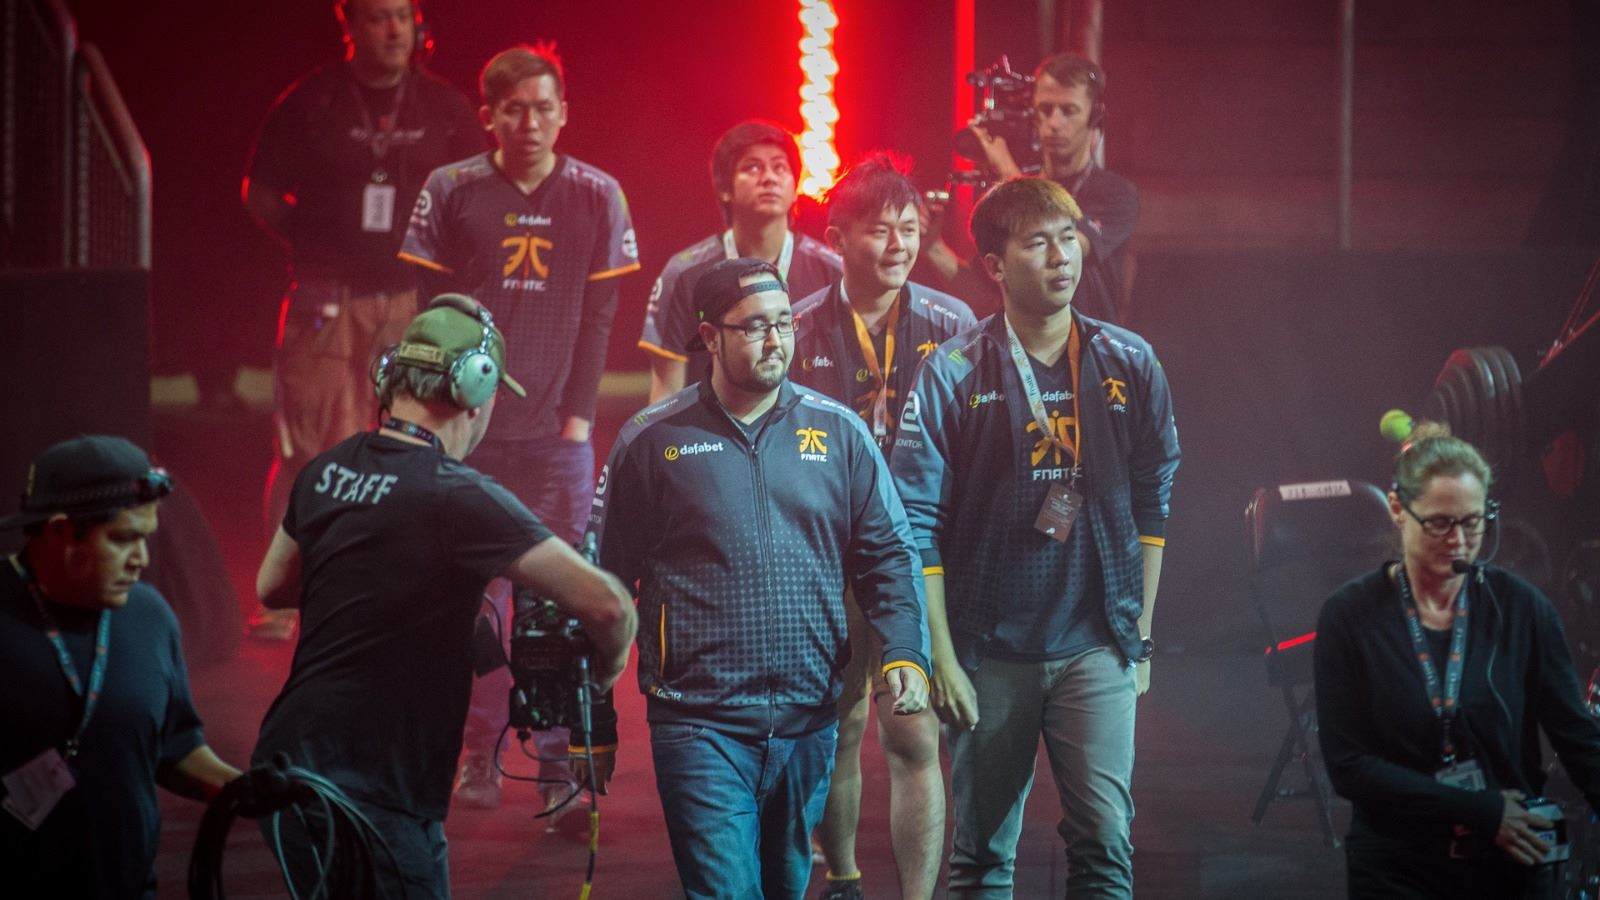 Image from Fnatic Dota